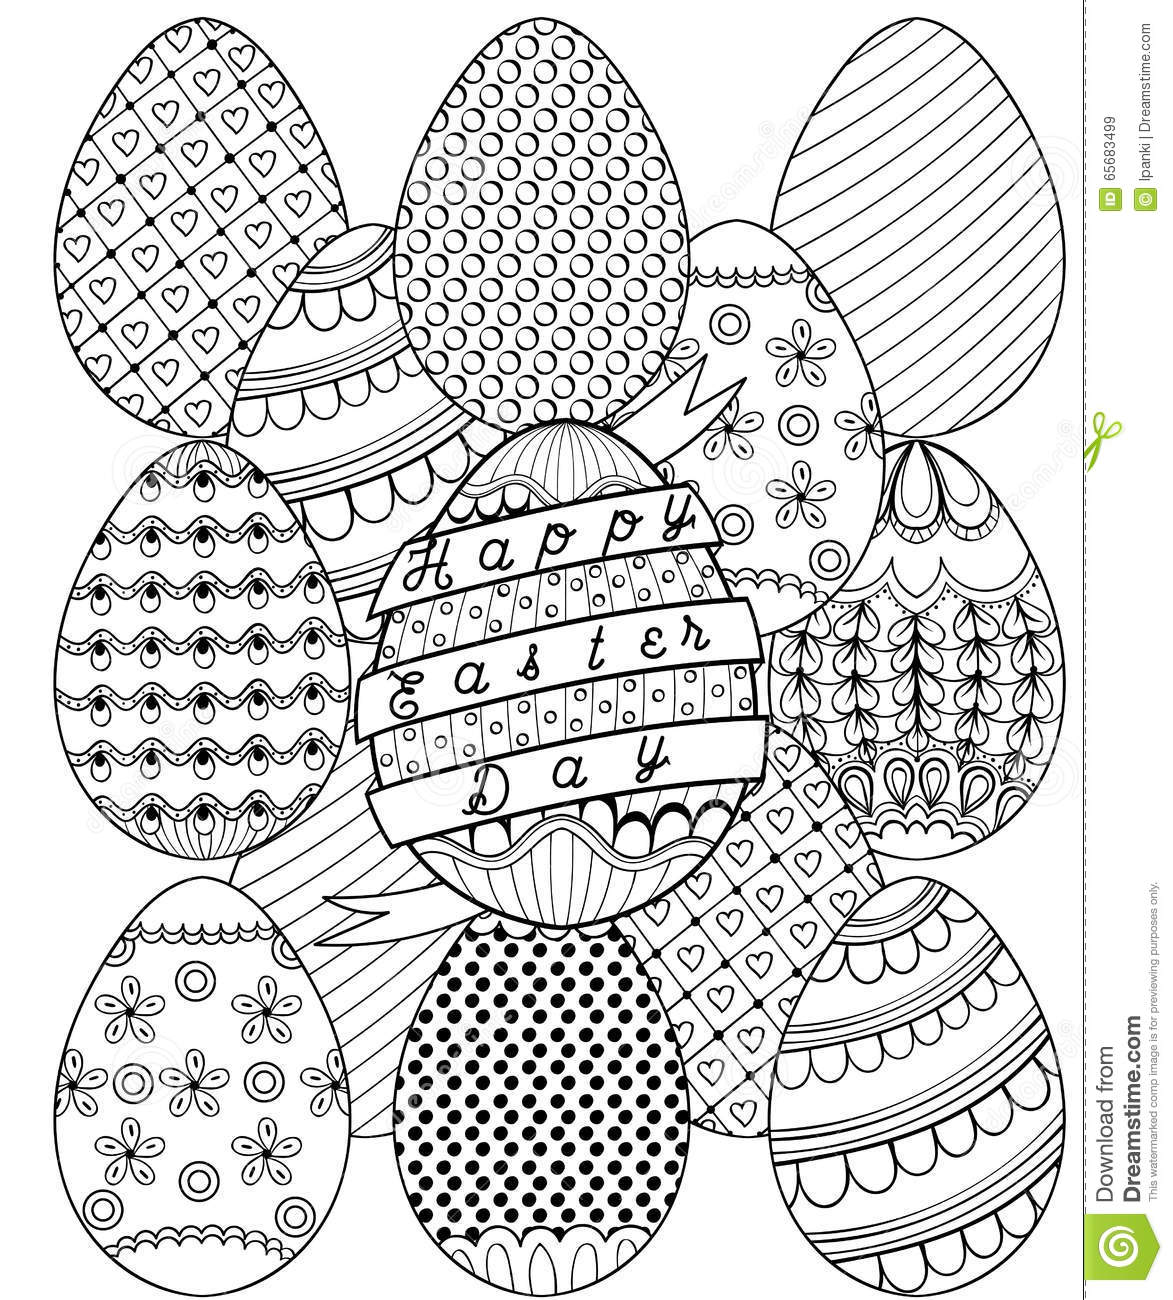 Hand Drawn Artistic Easter Eggs Pattern For Adult Coloring Page Royalty Free Vector